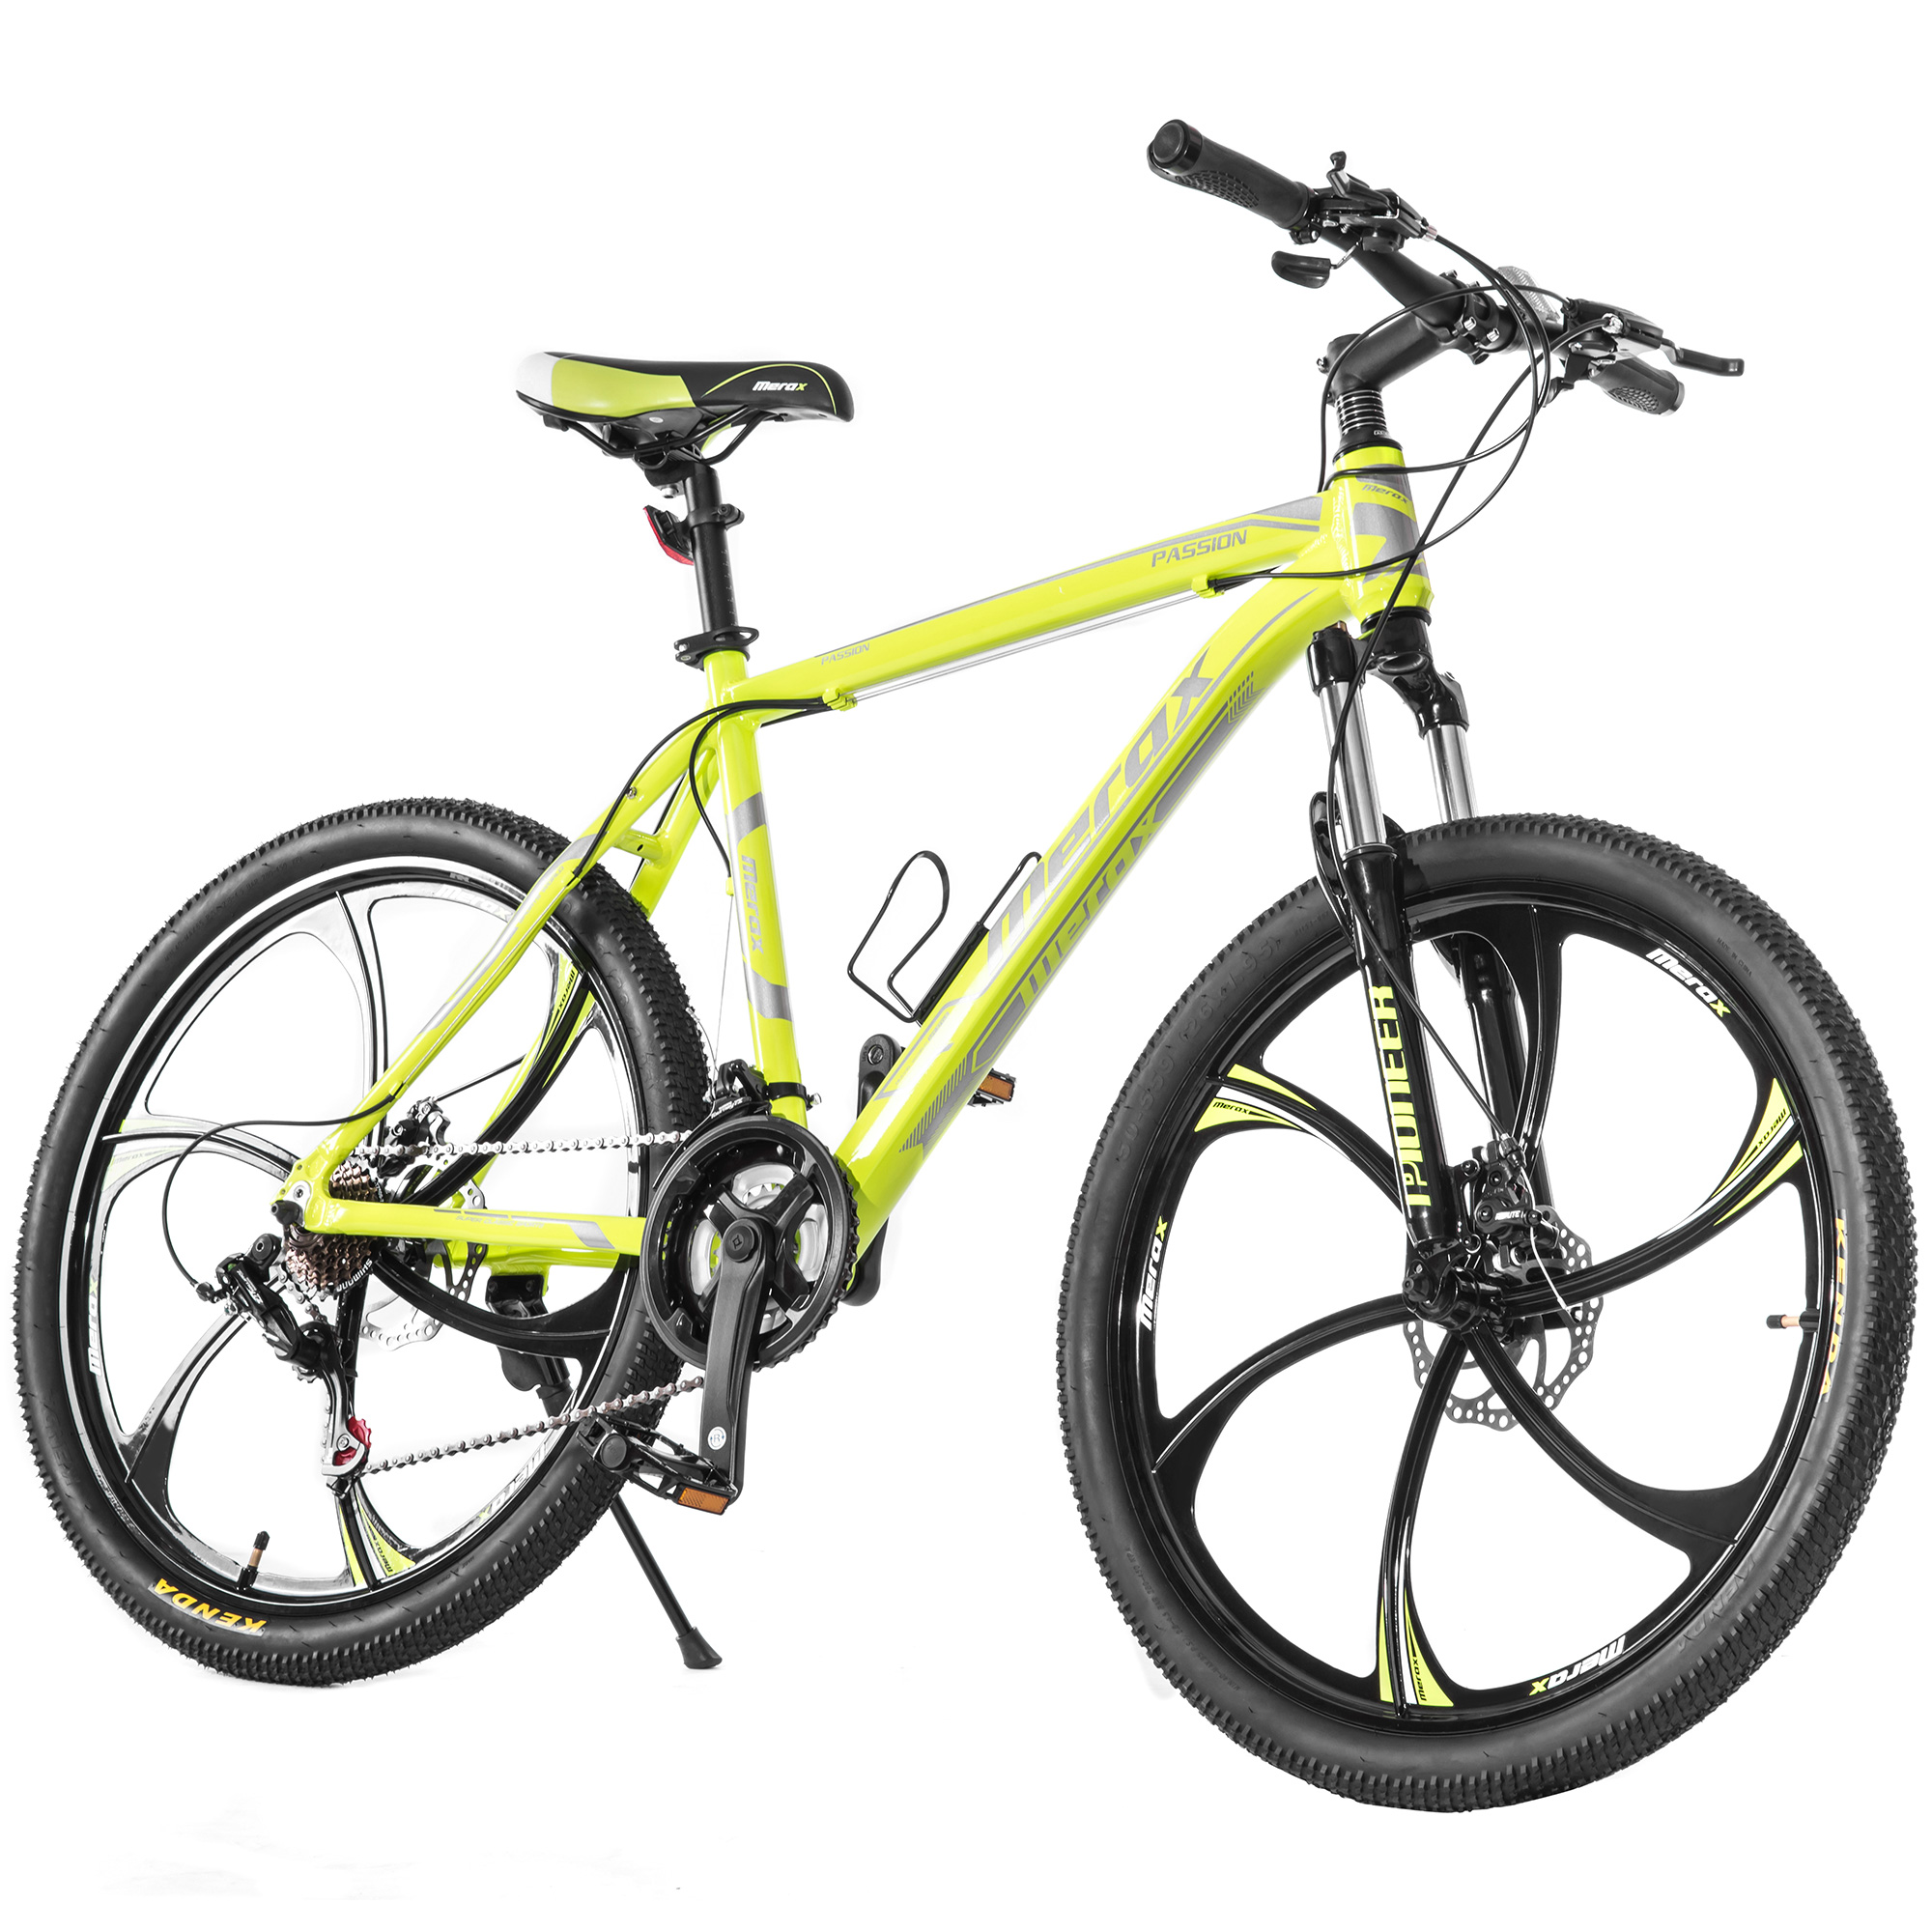 "Merax Finiss 26"" Aluminum 21 Speed Magnesium Alloy Wheel Mountain Bike"